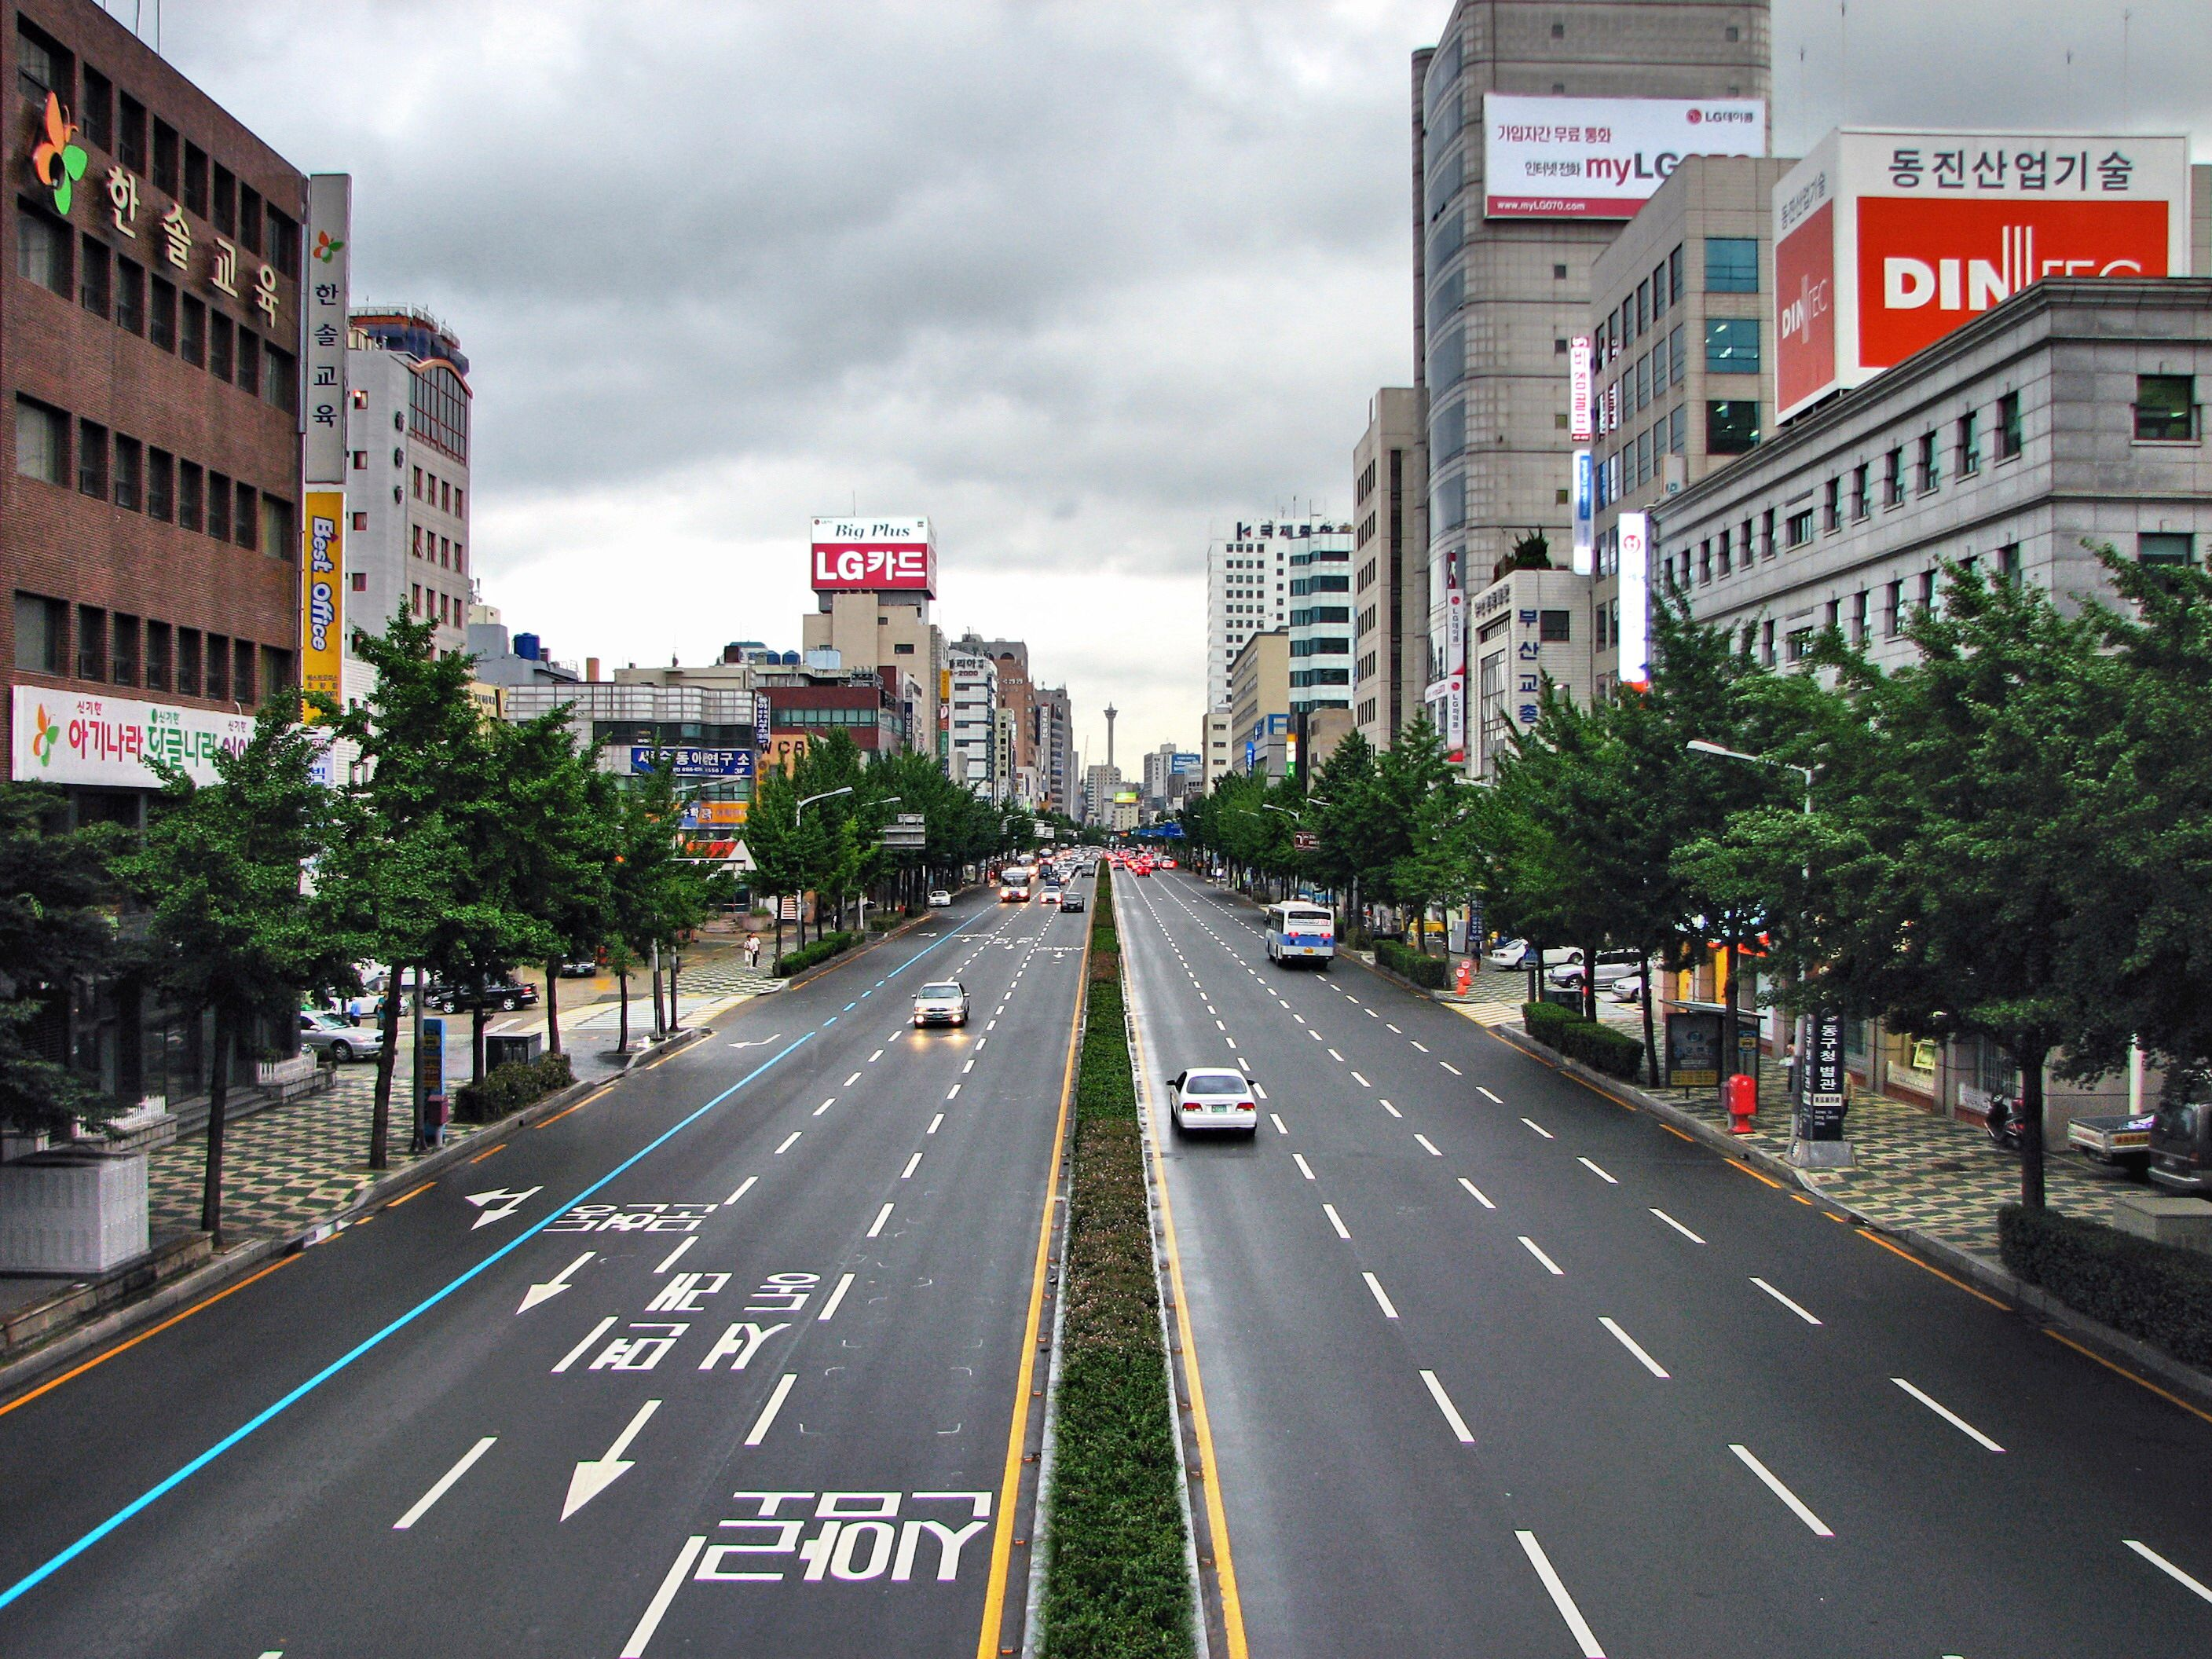 Korean avenue